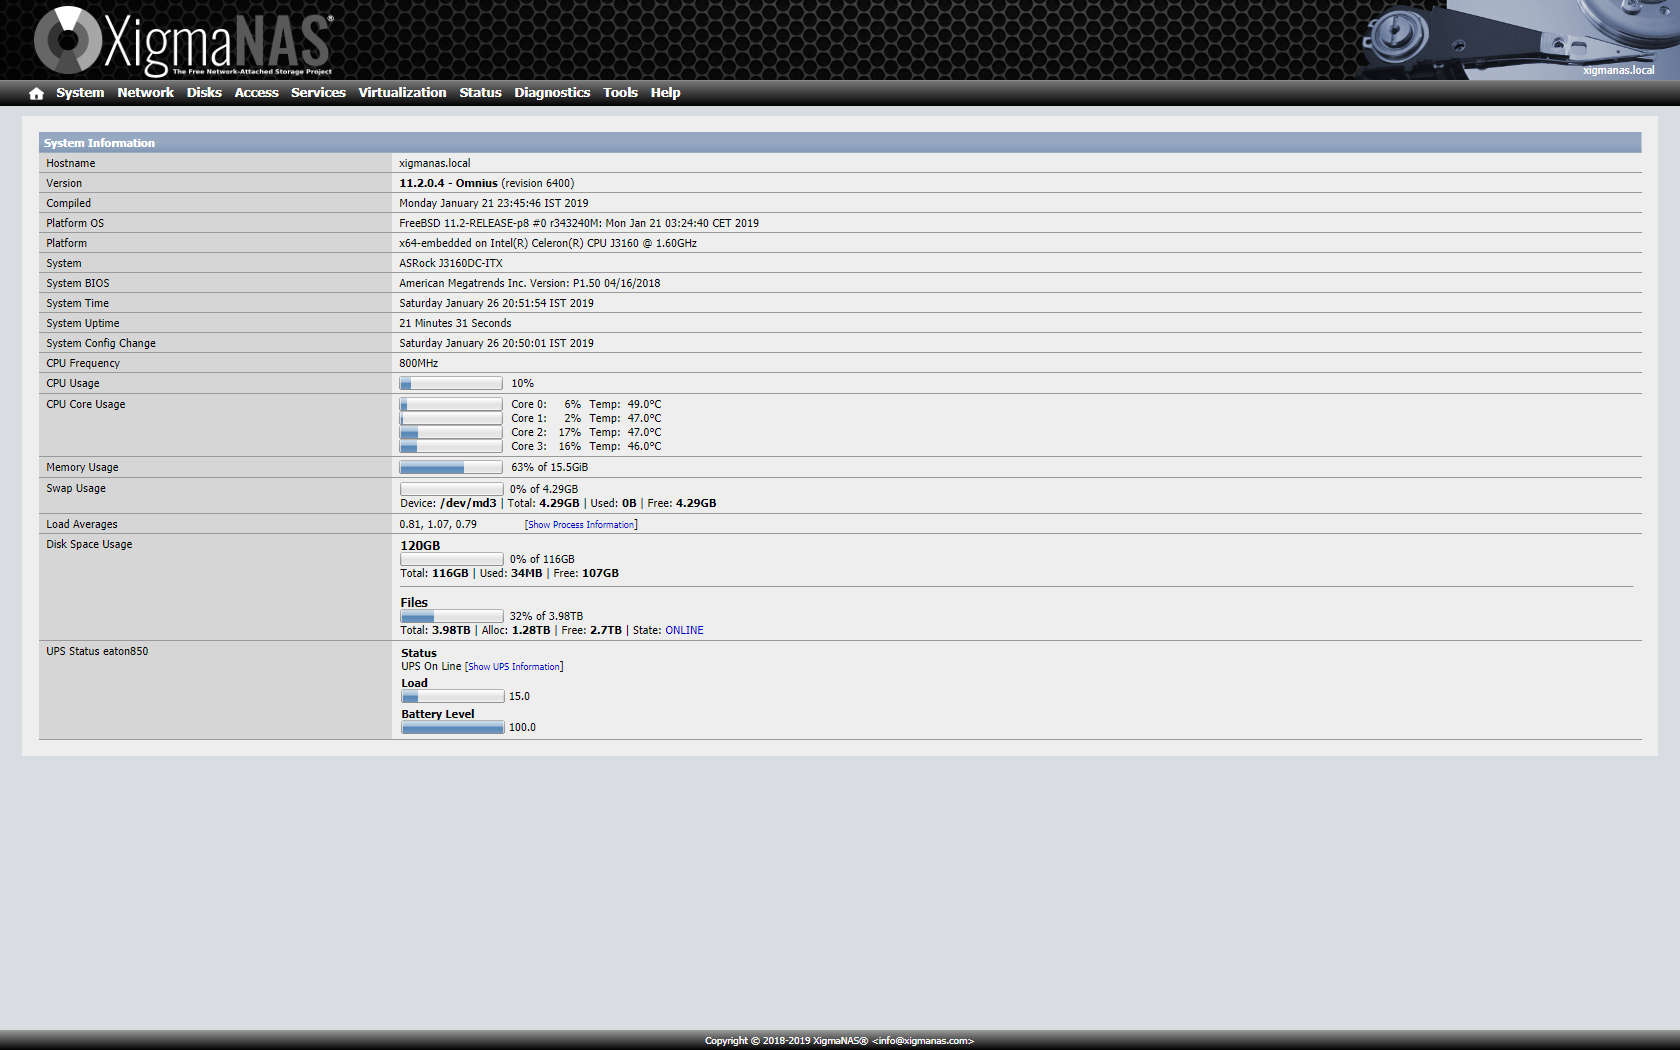 FREENAS UPS WINDOWS 7 64 DRIVER